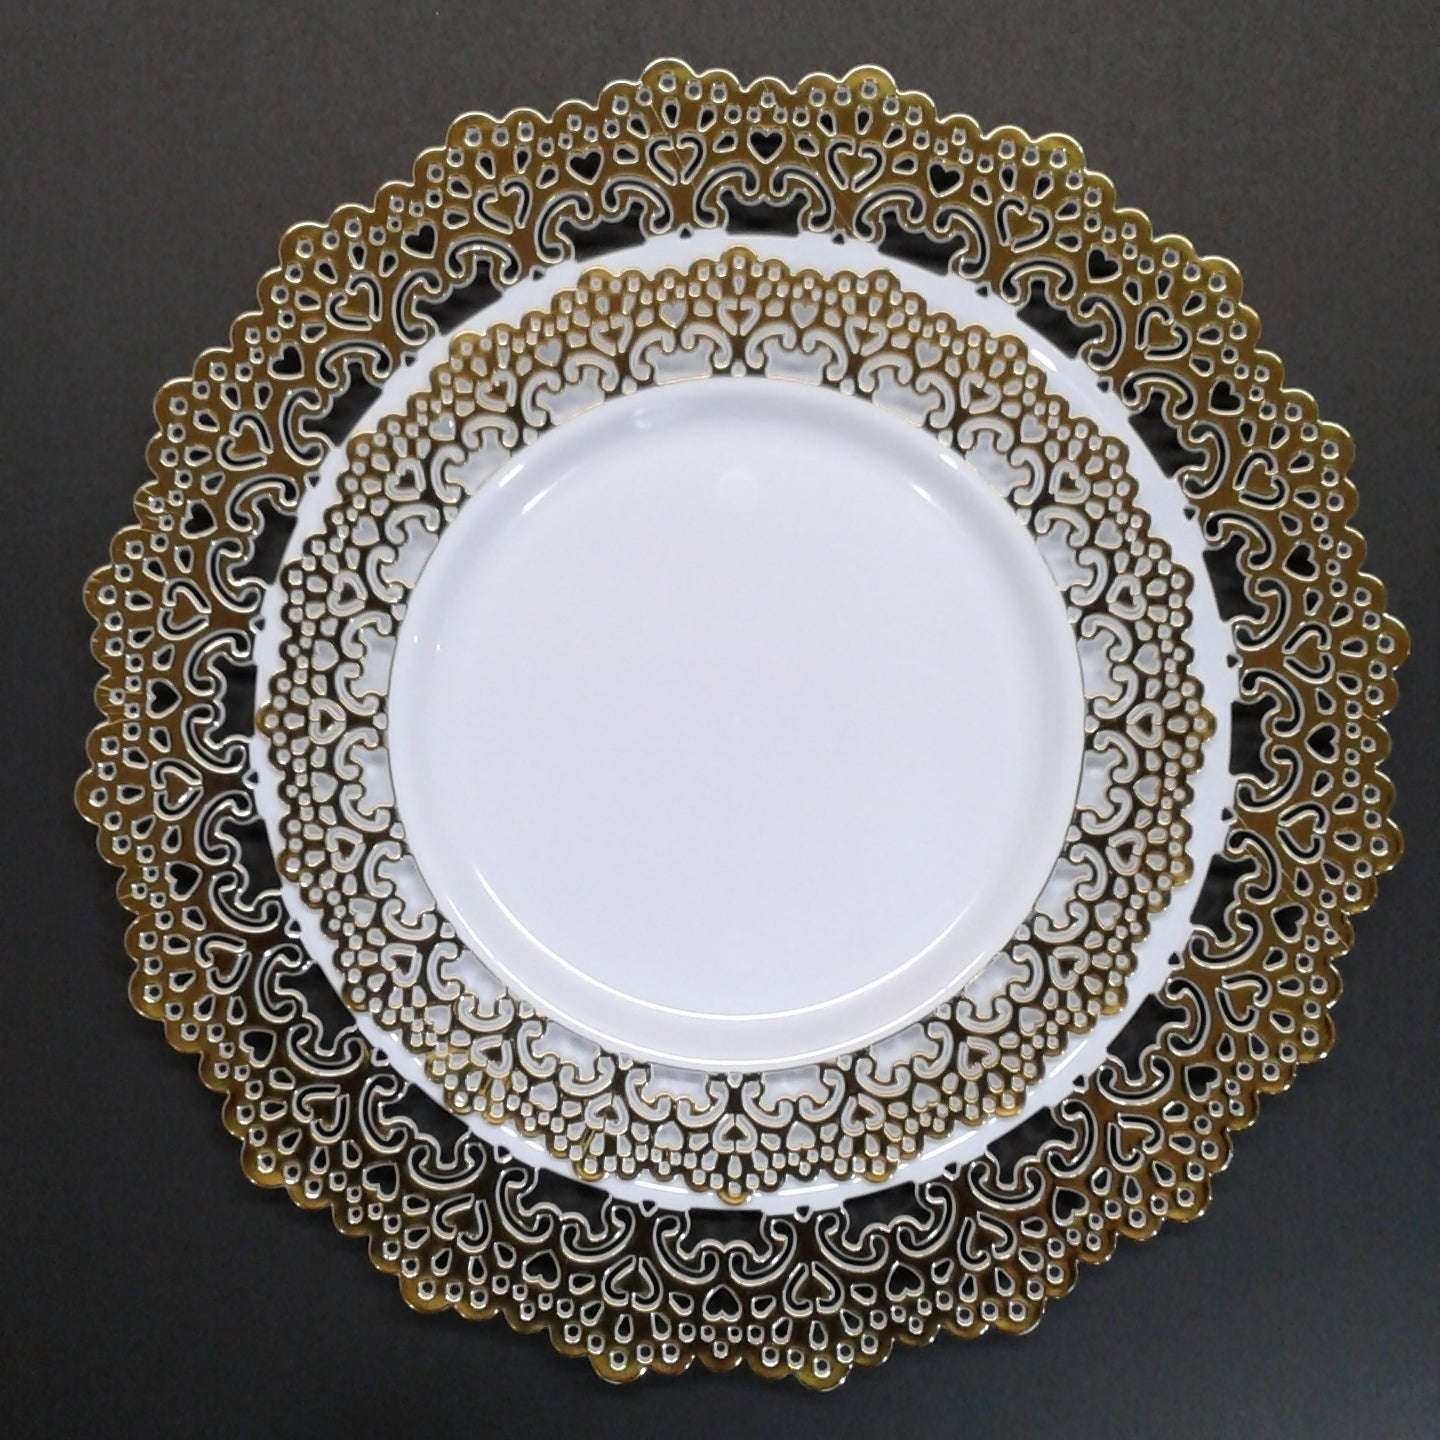 Decorative Plastic Dinnerware Gold Lace Rim 9 Round Buffet Lunch Party Plates 48 Pack